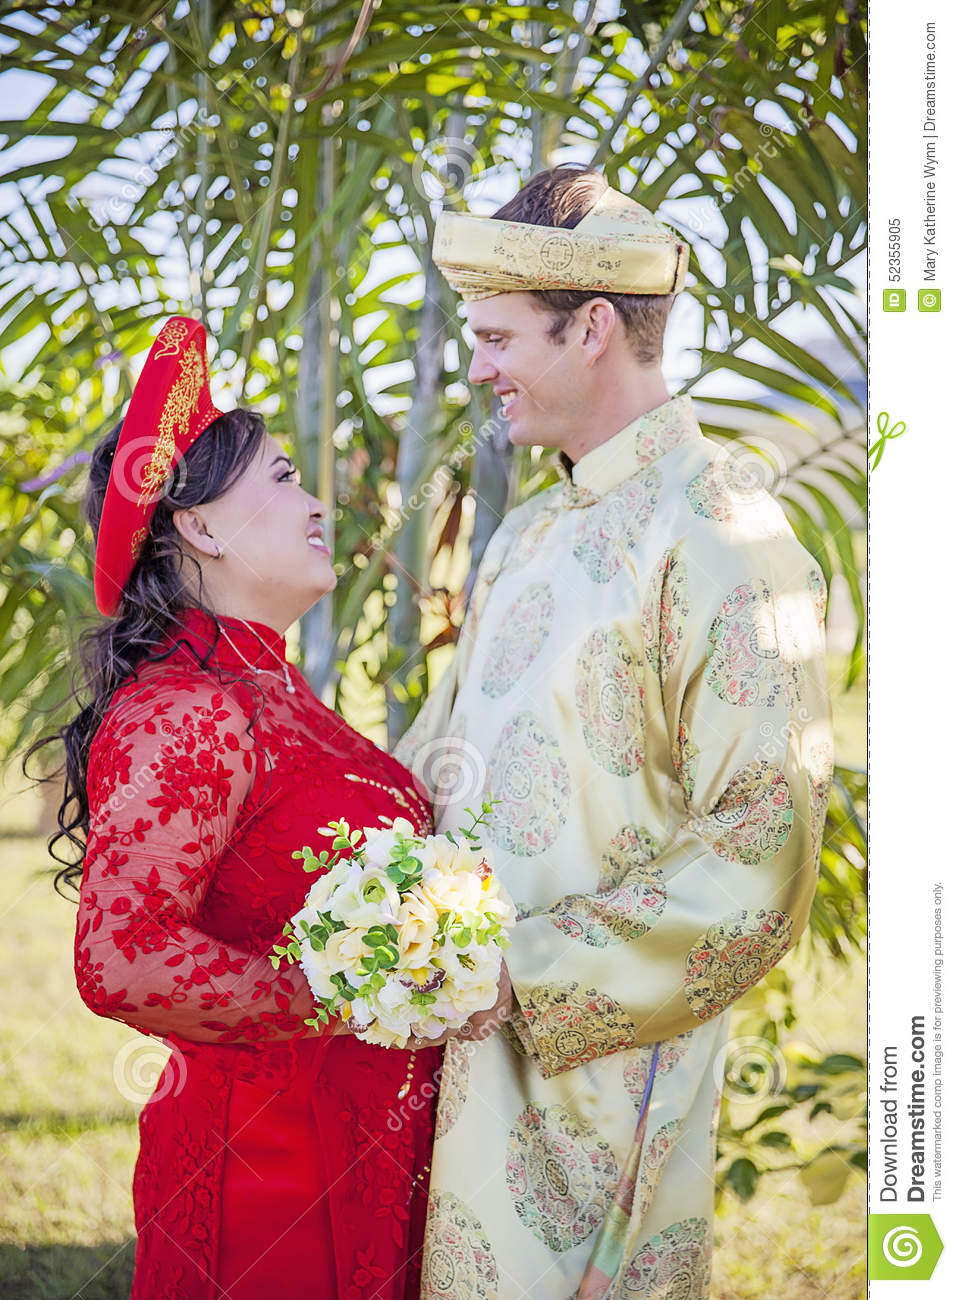 Vietnamese American Wedding Ceremony Stock Image - Image of detail ...